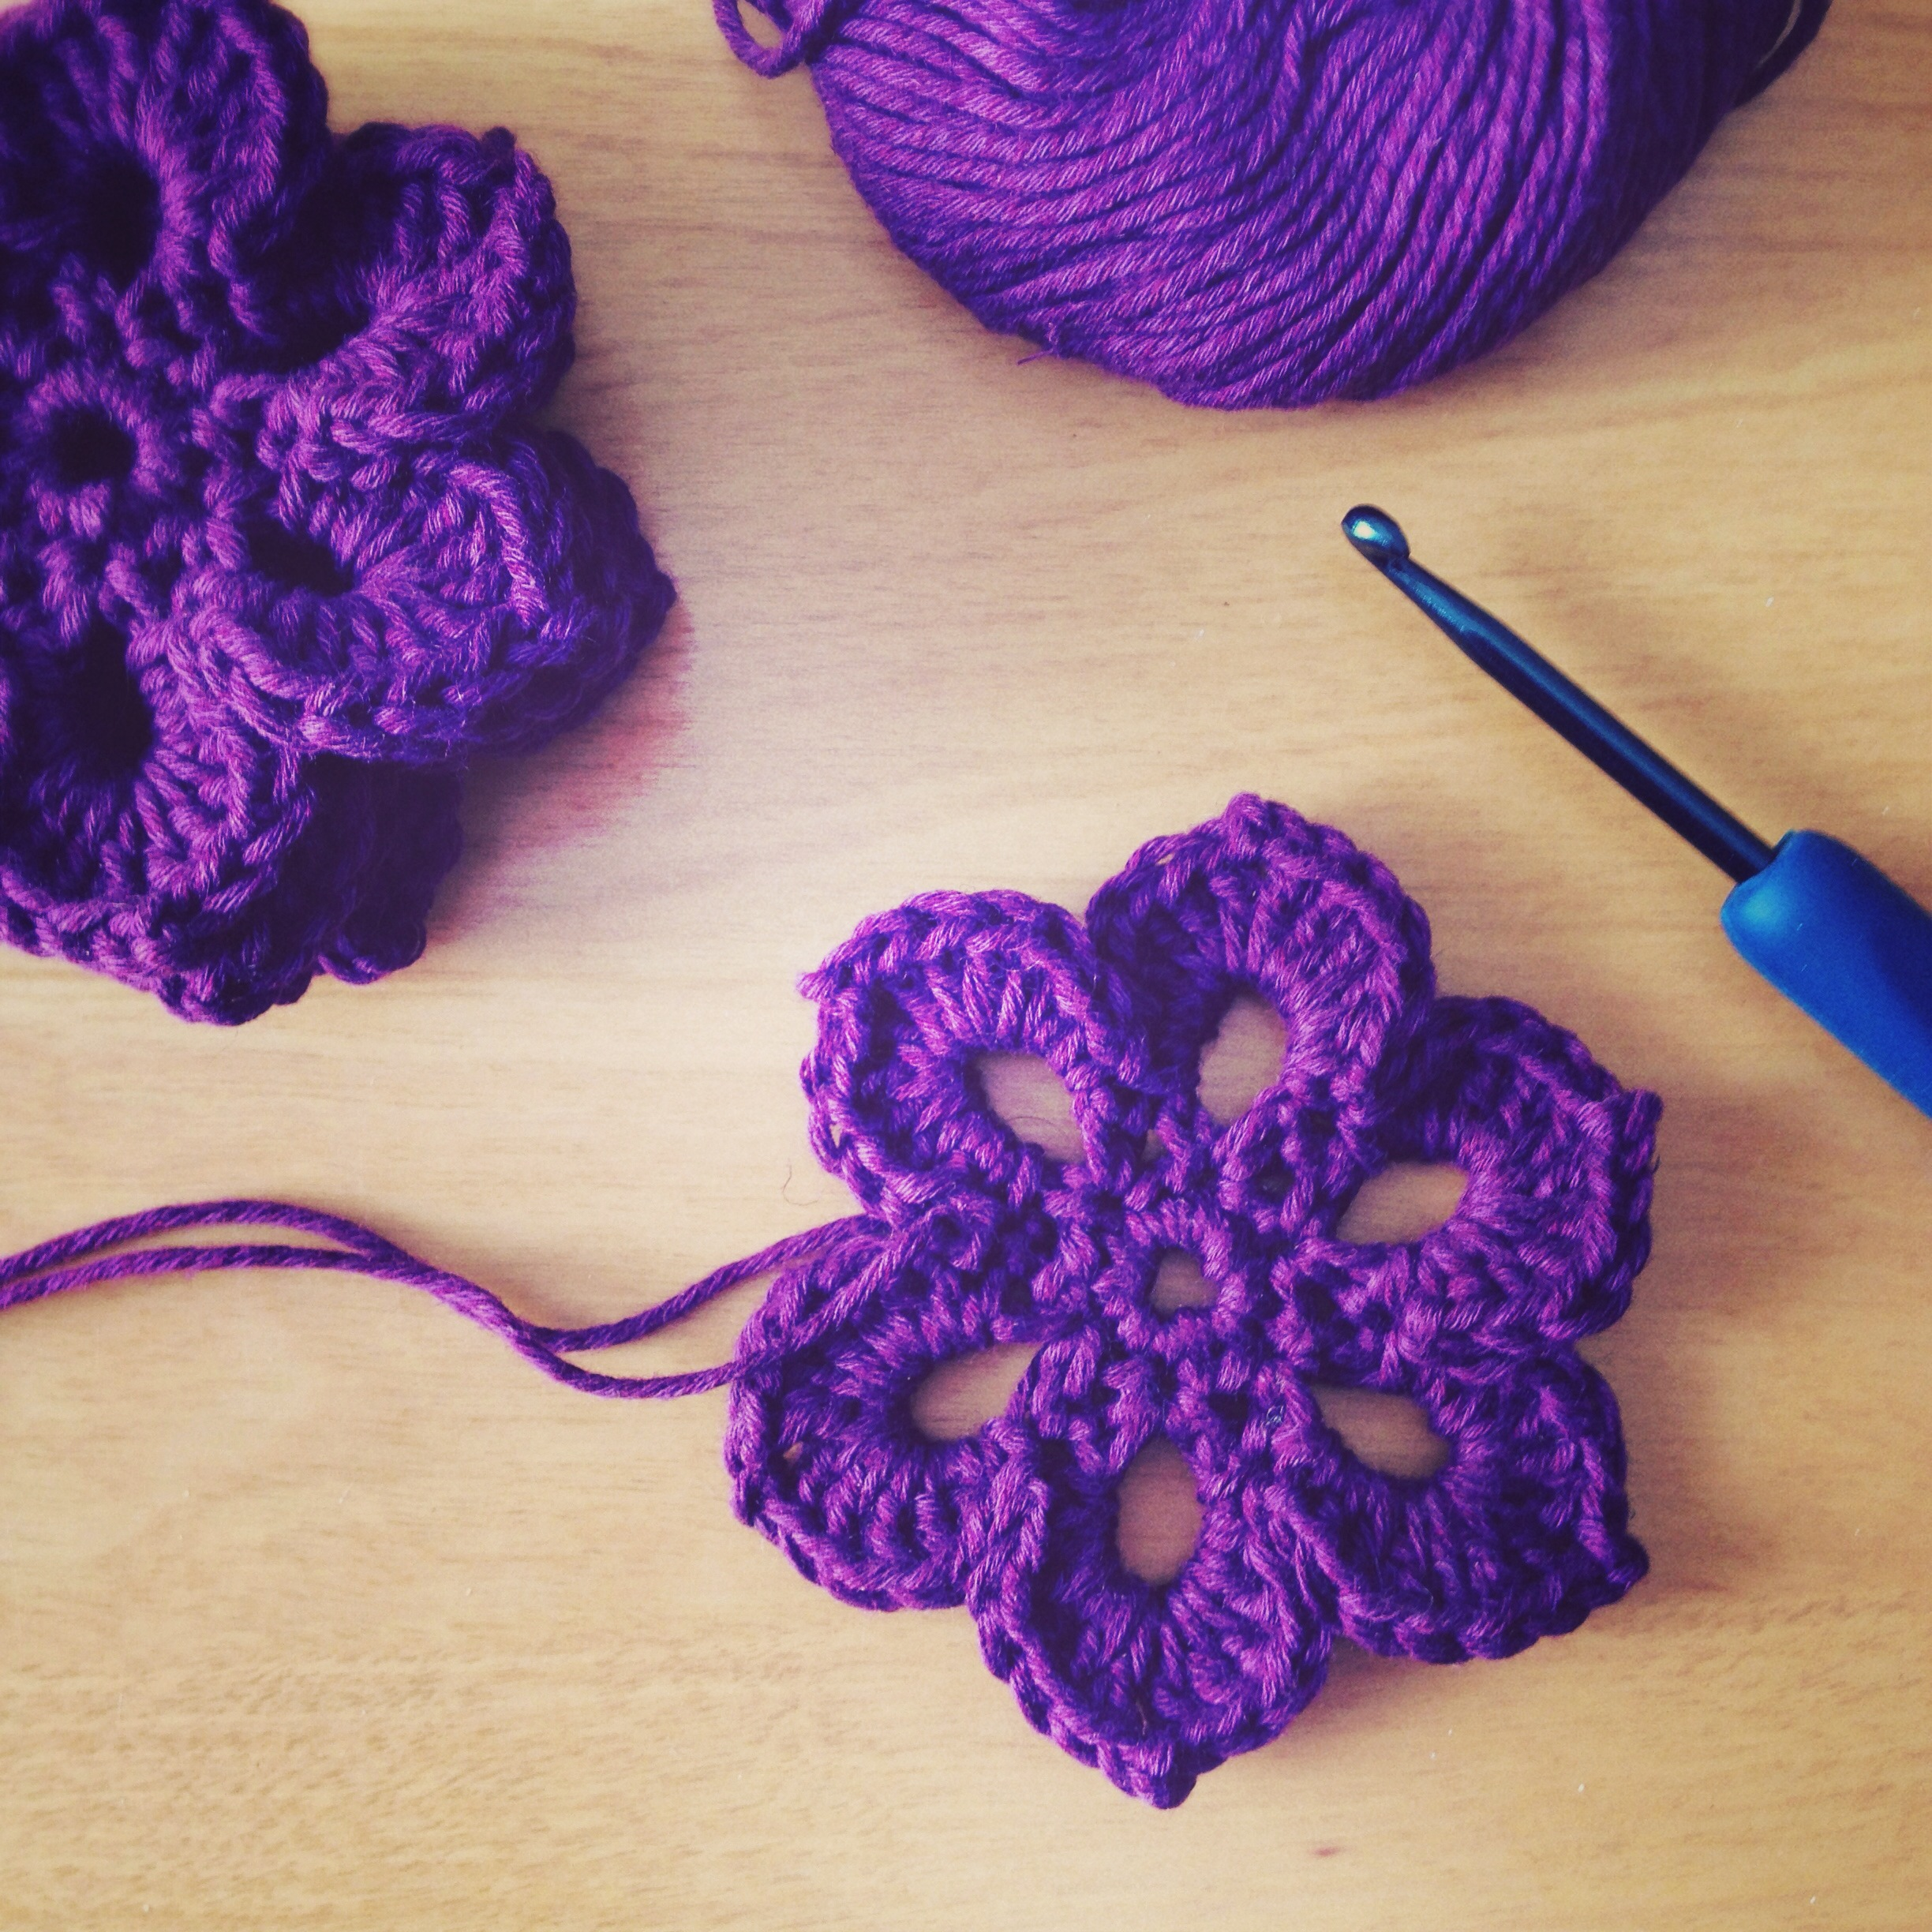 Crocheting A Flower : Crochet Motif Flower for Scarf Deux Brins de Maille